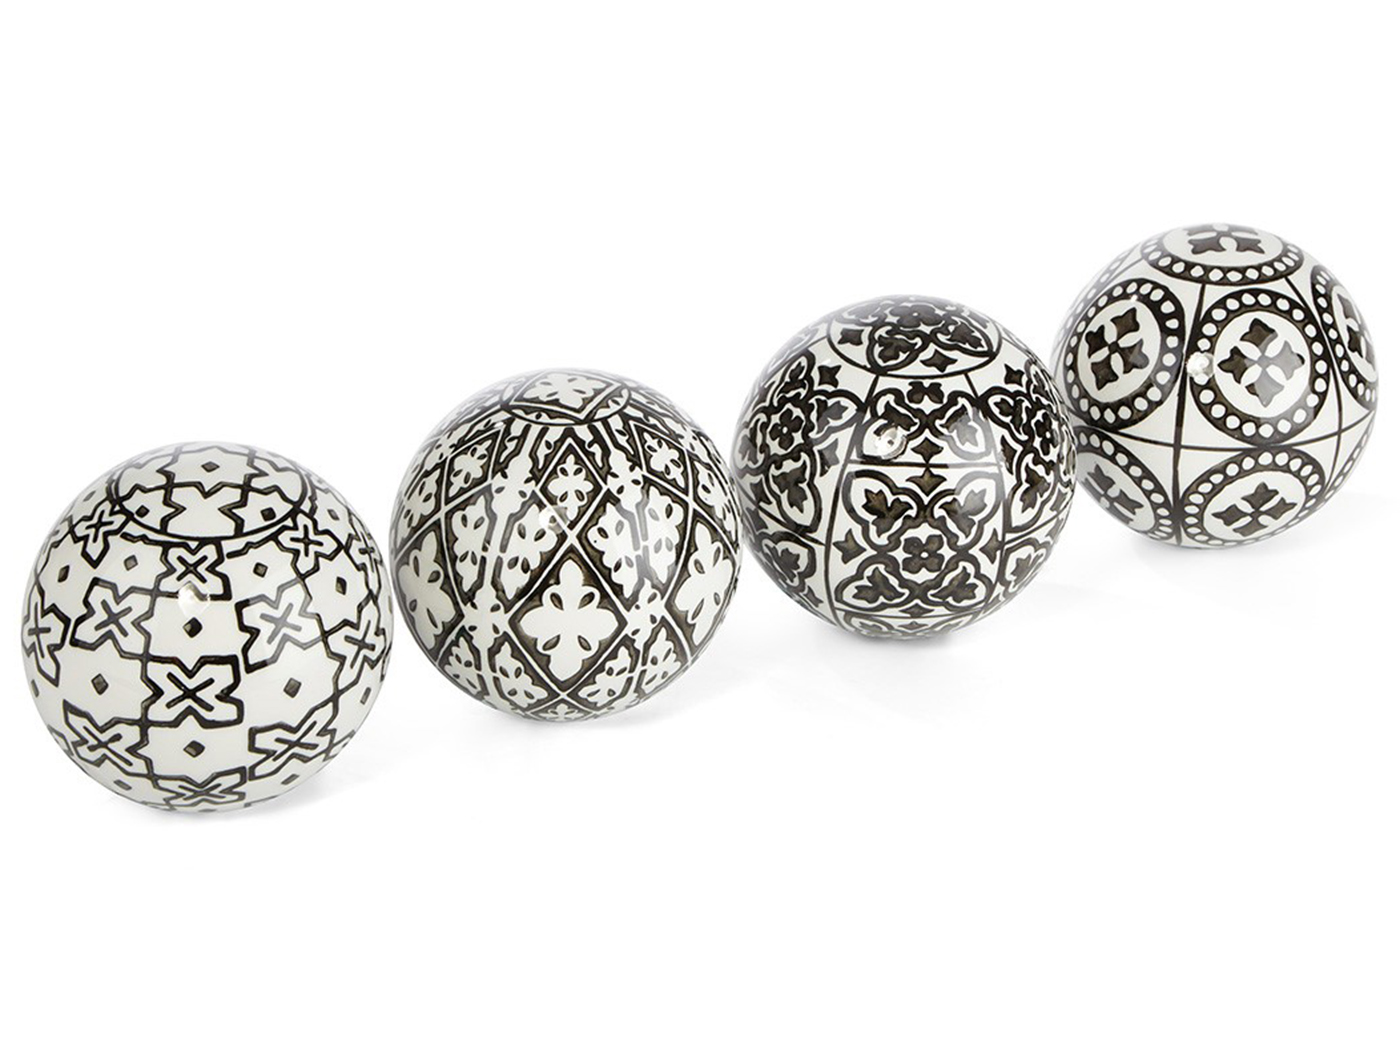 Assorted Black and White Ceramic Deco Ball 4""